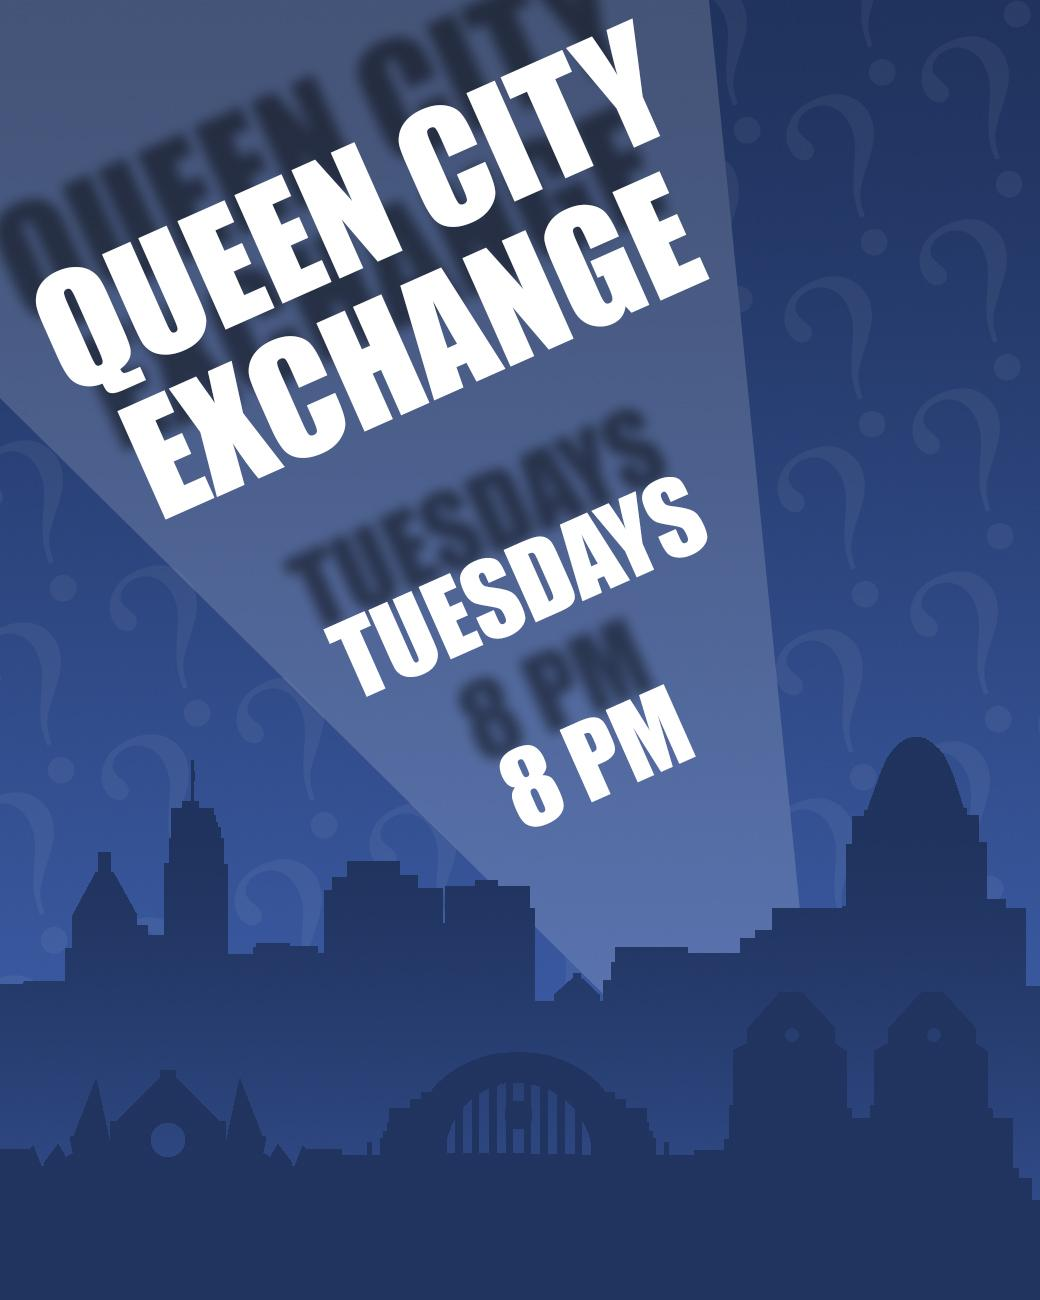 Queen City Exchange has trivia every Tuesday starting at 8 PM. ADDRESS: 32 W. Court Street (45202) / Image: Phil Armstrong, Cincinnati Refined // Published: 8.30.17